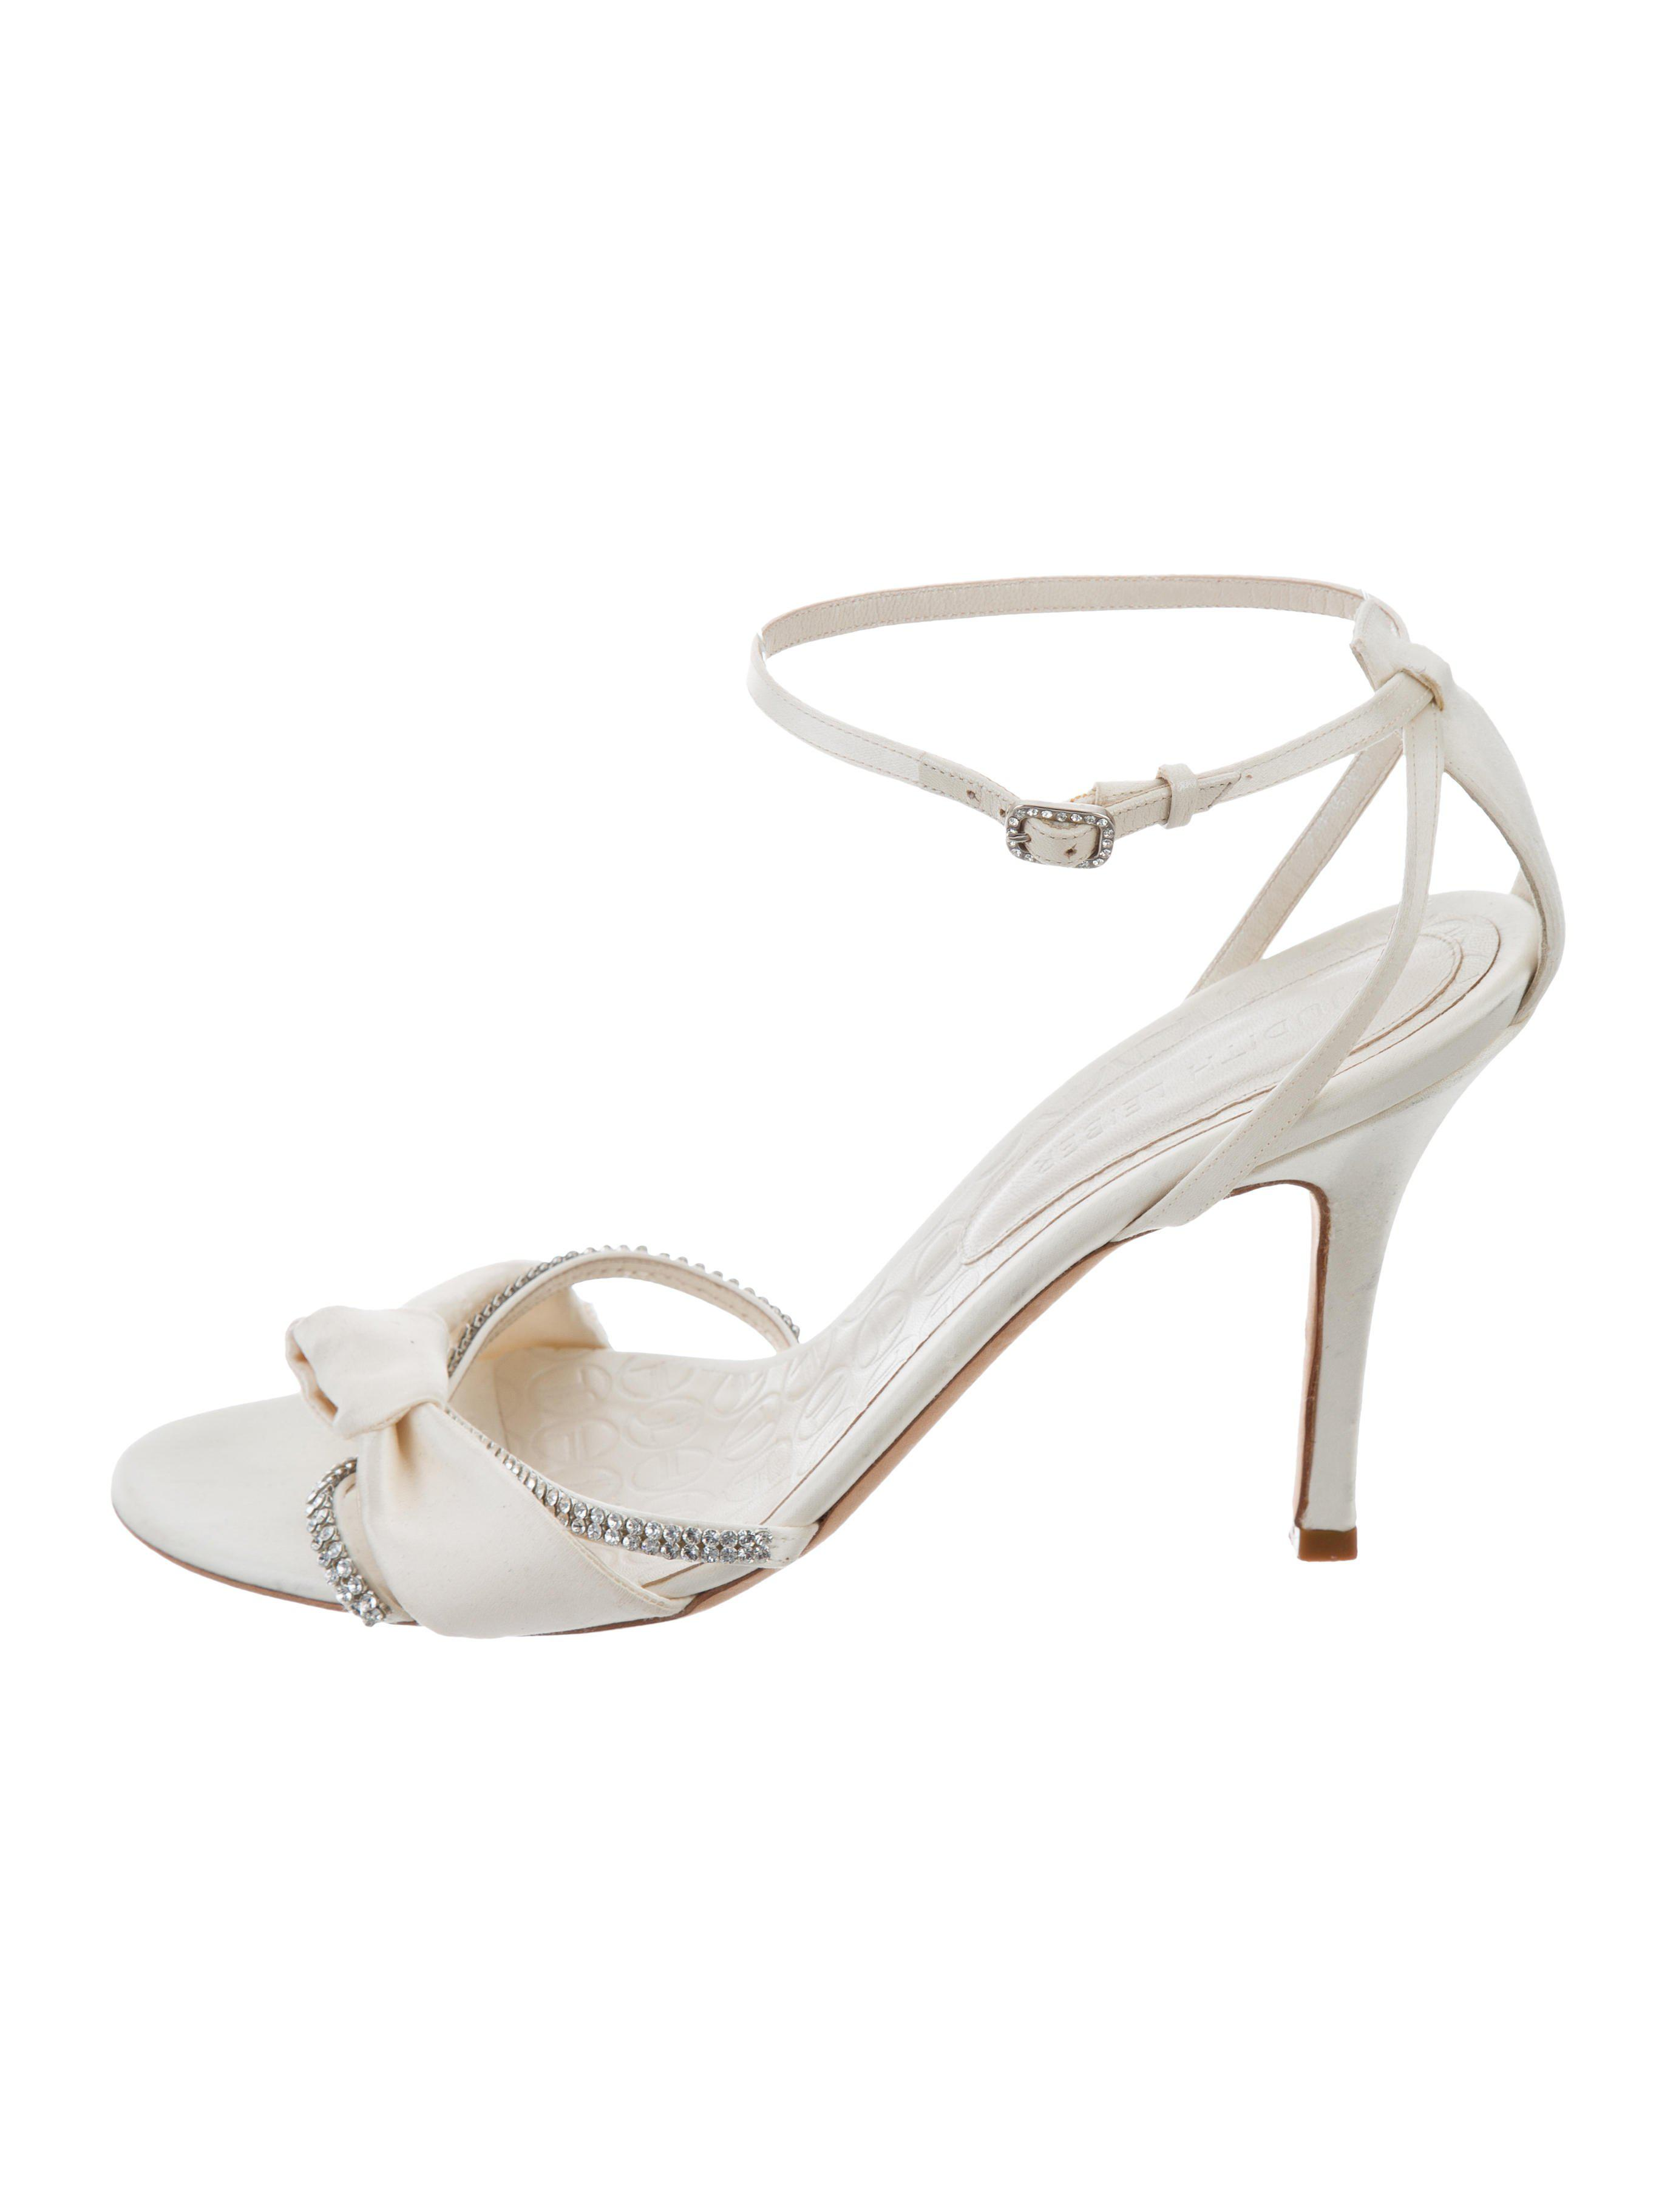 Judith Leiber Satin Jeweled Sandals buy cheap best sale discount fashionable clearance wide range of deals cheap price cheap newest ML06k